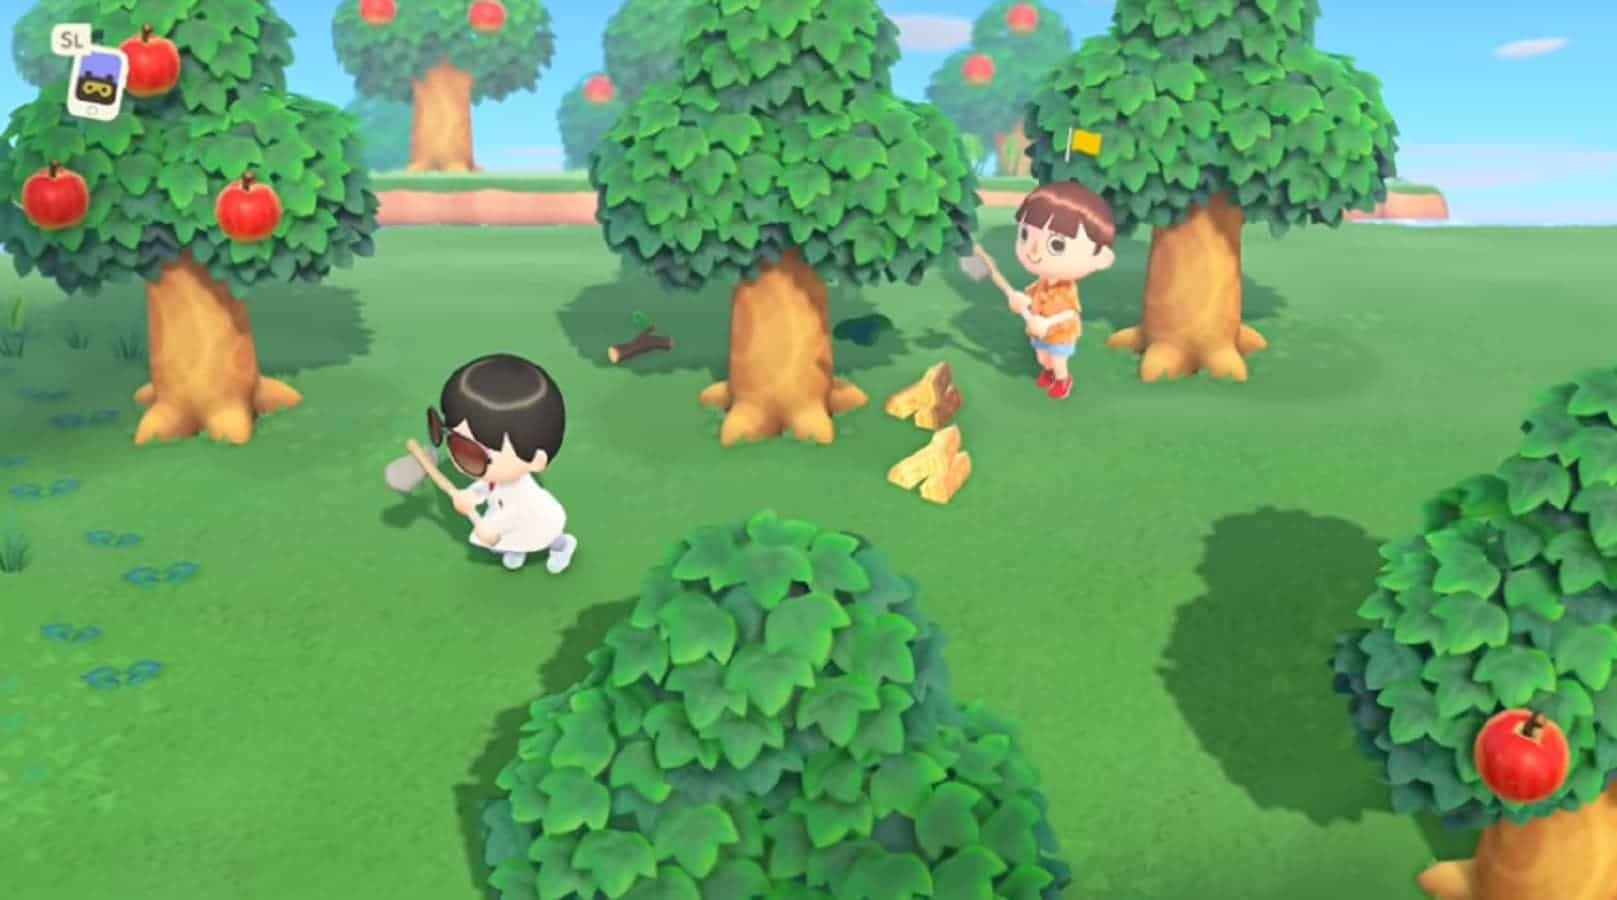 animal crossing new horizons gameplay e3 2019